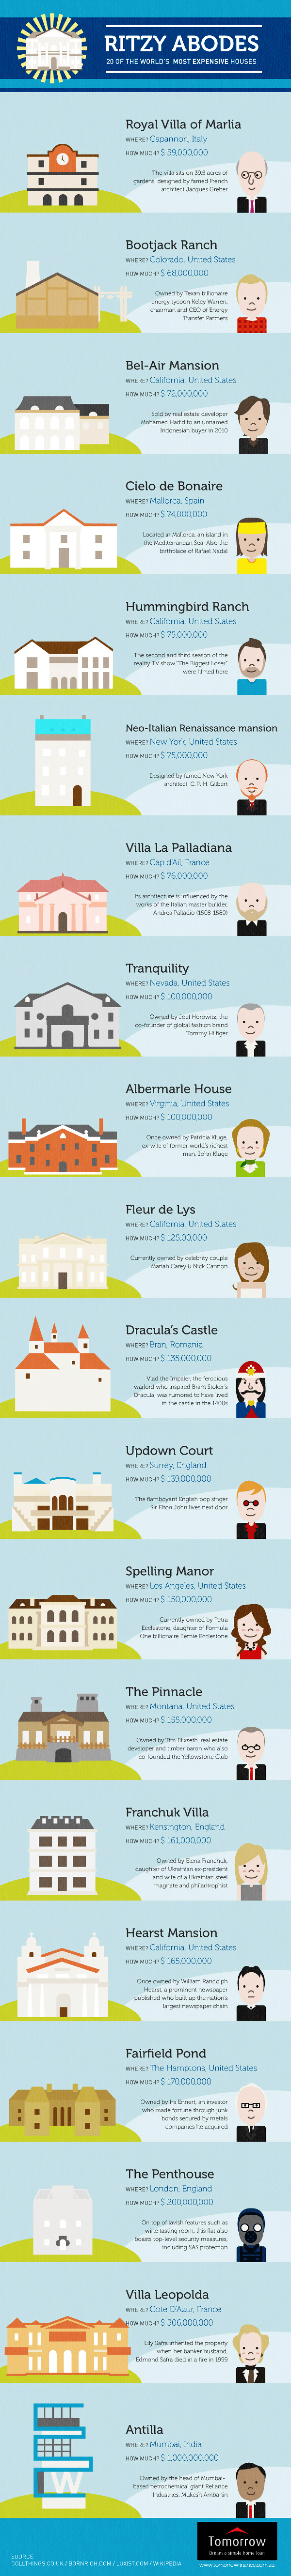 World's most expensive houses Infographic